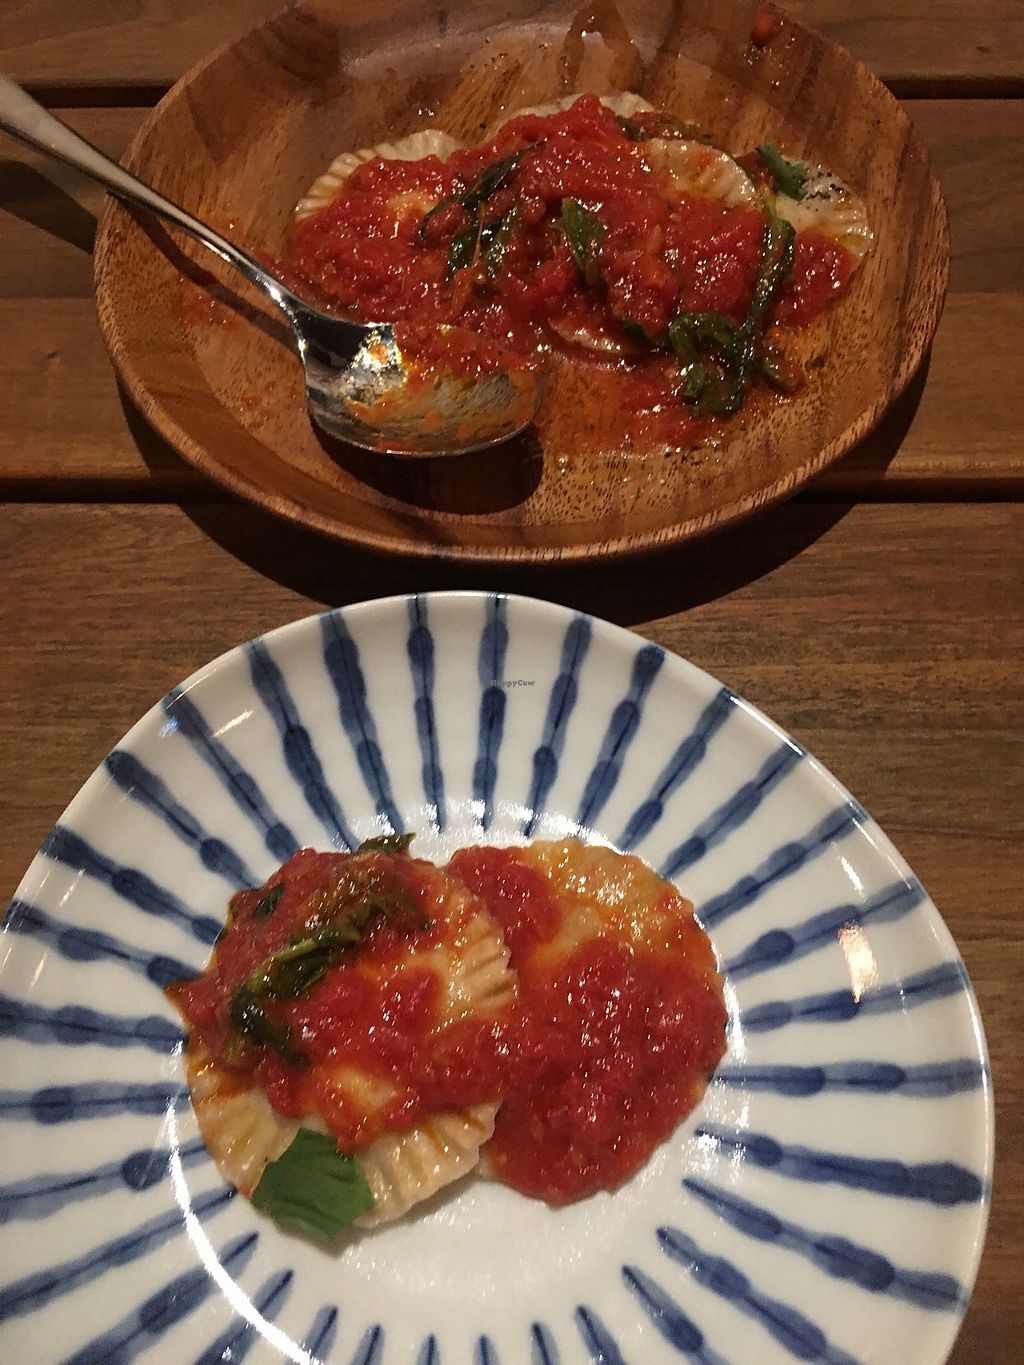 """Photo of Pettirosso  by <a href=""""/members/profile/FintanMcGivern"""">FintanMcGivern</a> <br/>Vegan Ravioli  <br/> April 5, 2018  - <a href='/contact/abuse/image/107031/380877'>Report</a>"""